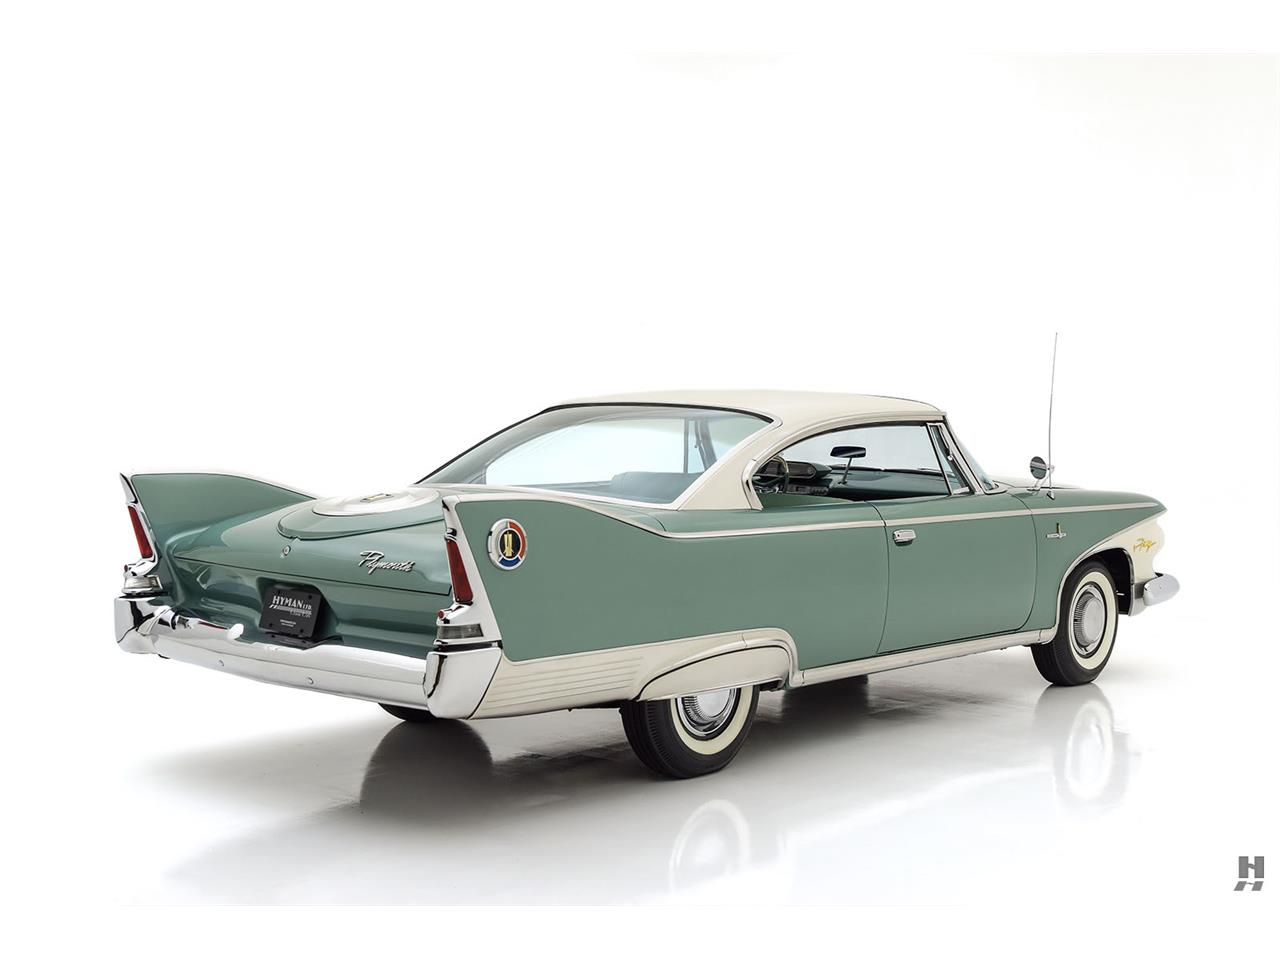 Large Picture of Classic '60 Fury located in Saint Louis Missouri - $69,500.00 - Q1JV